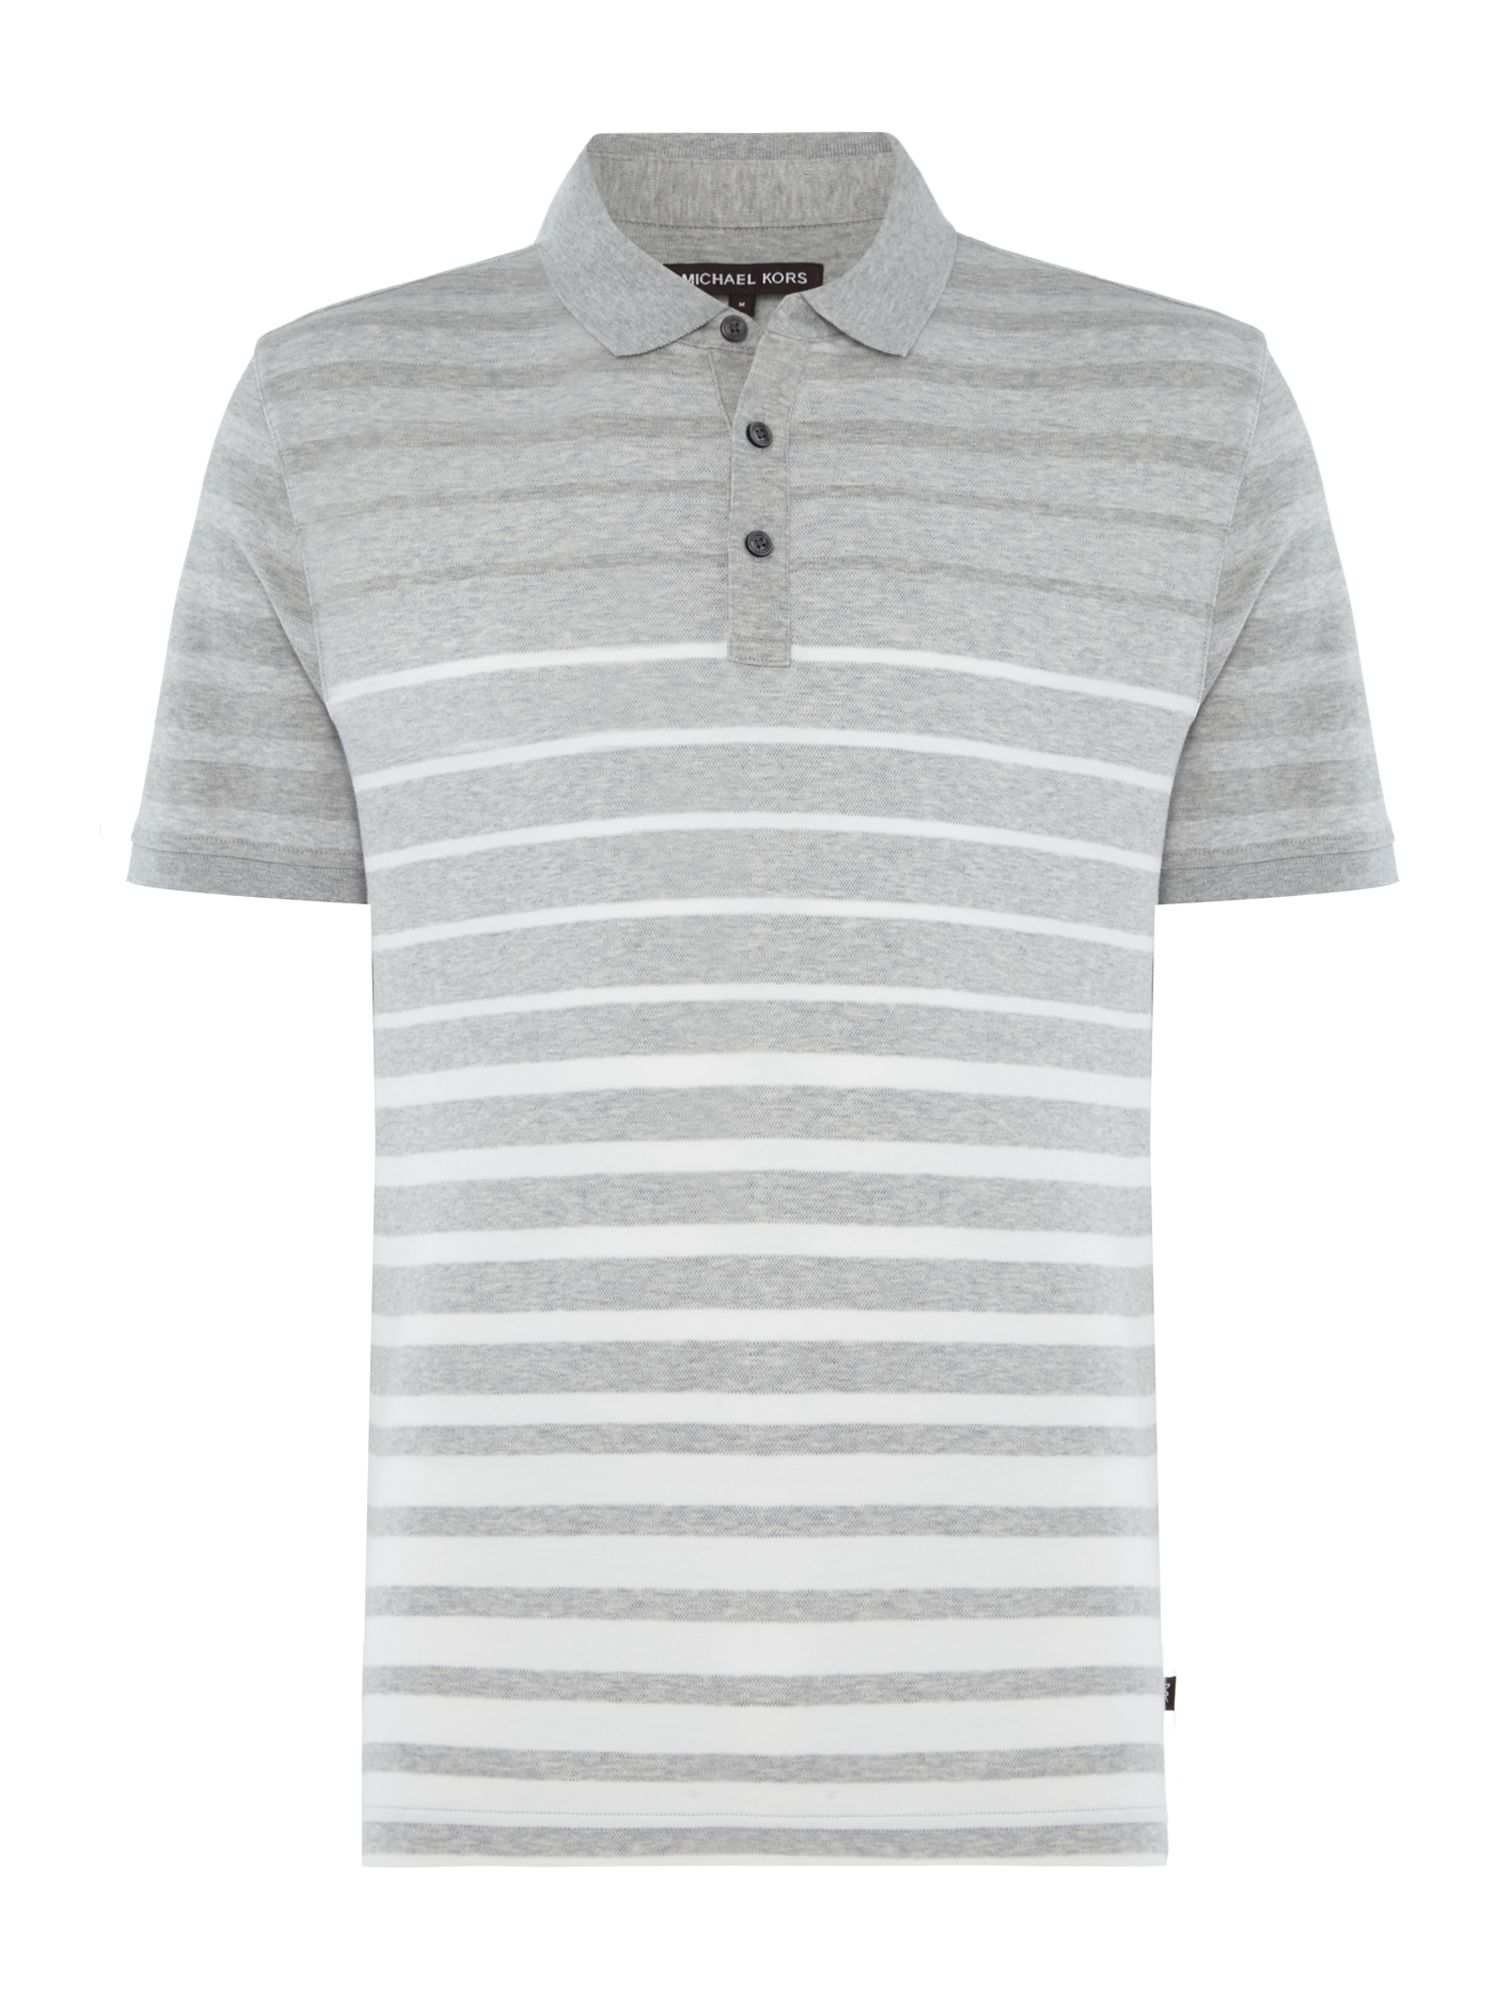 Men's Michael Kors Stiped Short Sleeve Polo Shirt, Grey Marl